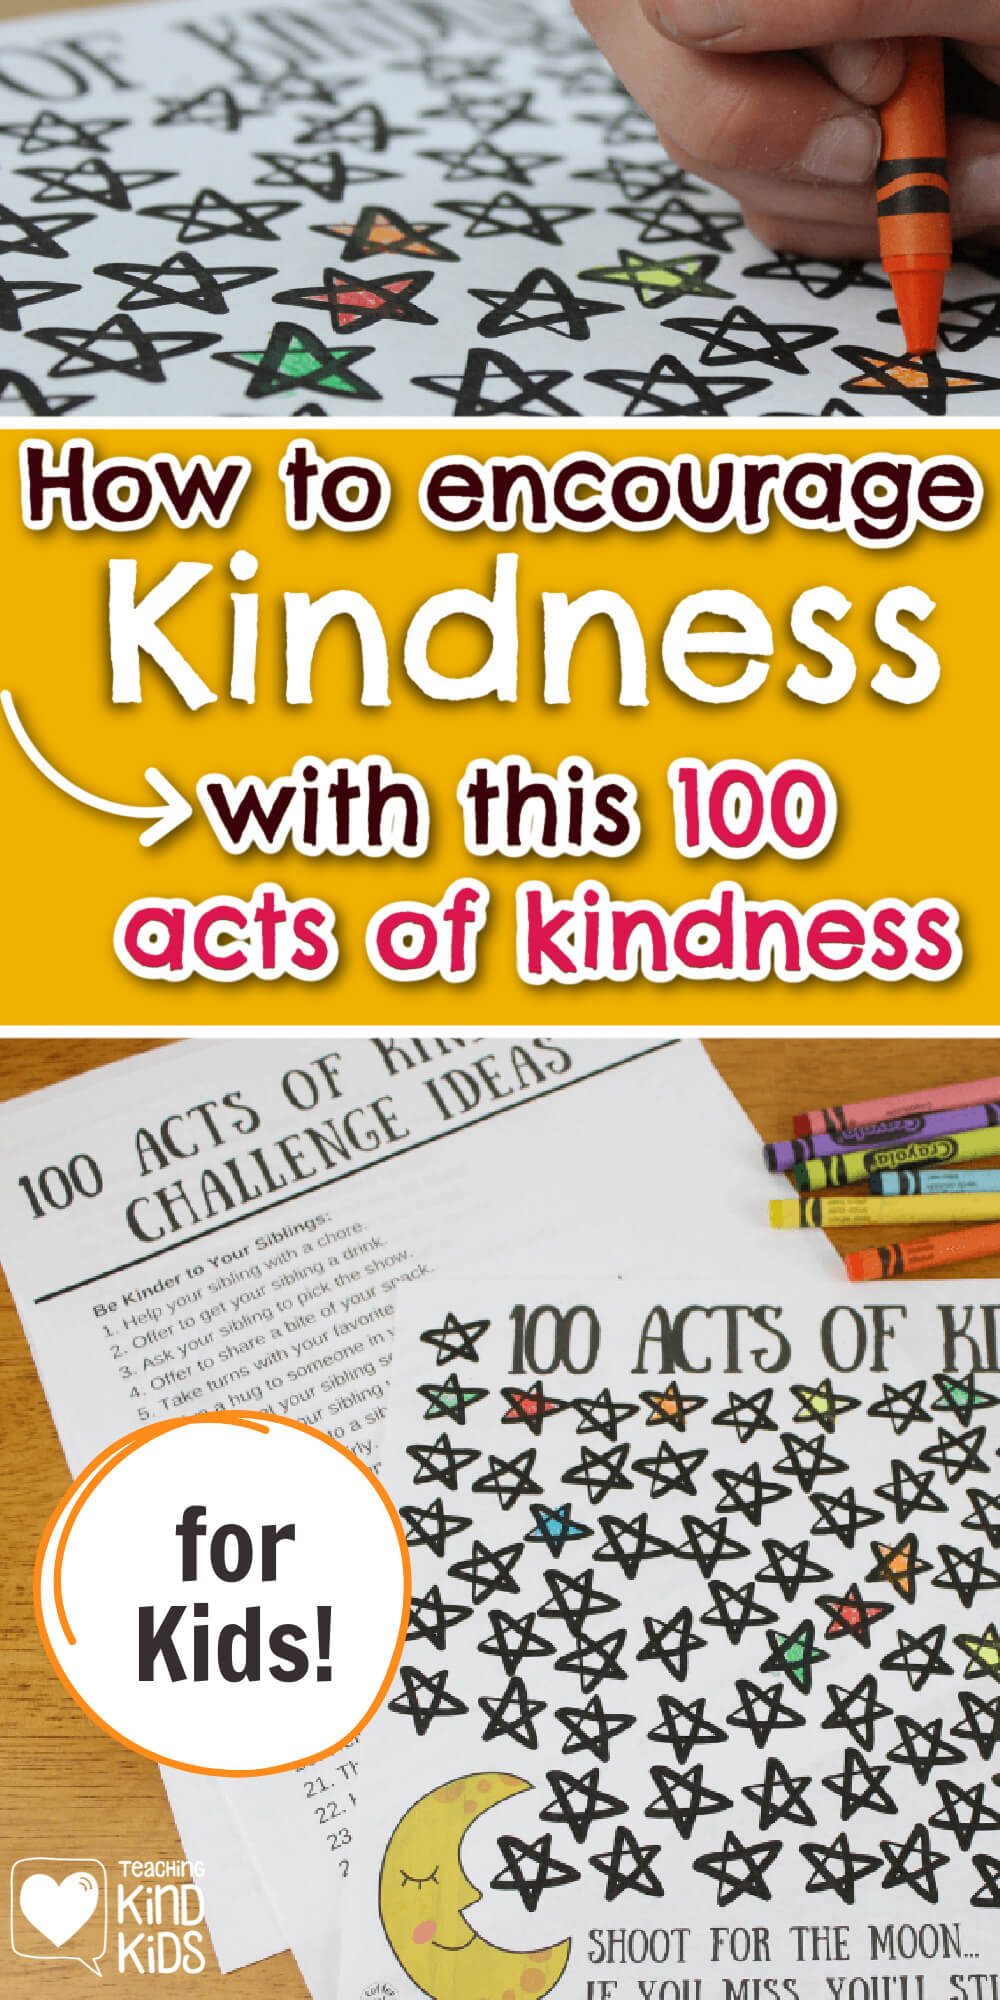 100 Acts of Kindness for kids challenge to encourage kids to be kinder. #kindkids #kindness #kindchallenge #printable #coffeeandcarpool